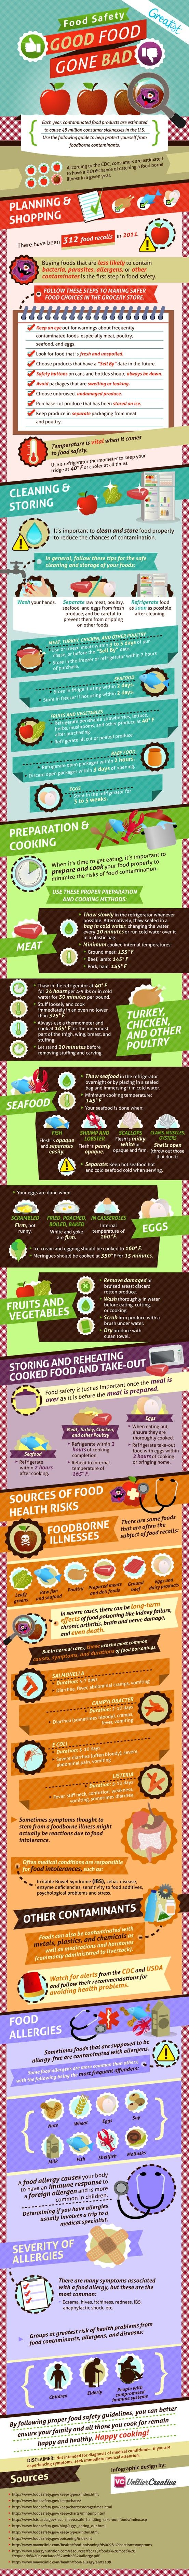 So important to be aware of your food and how each one should be prepared and stored.